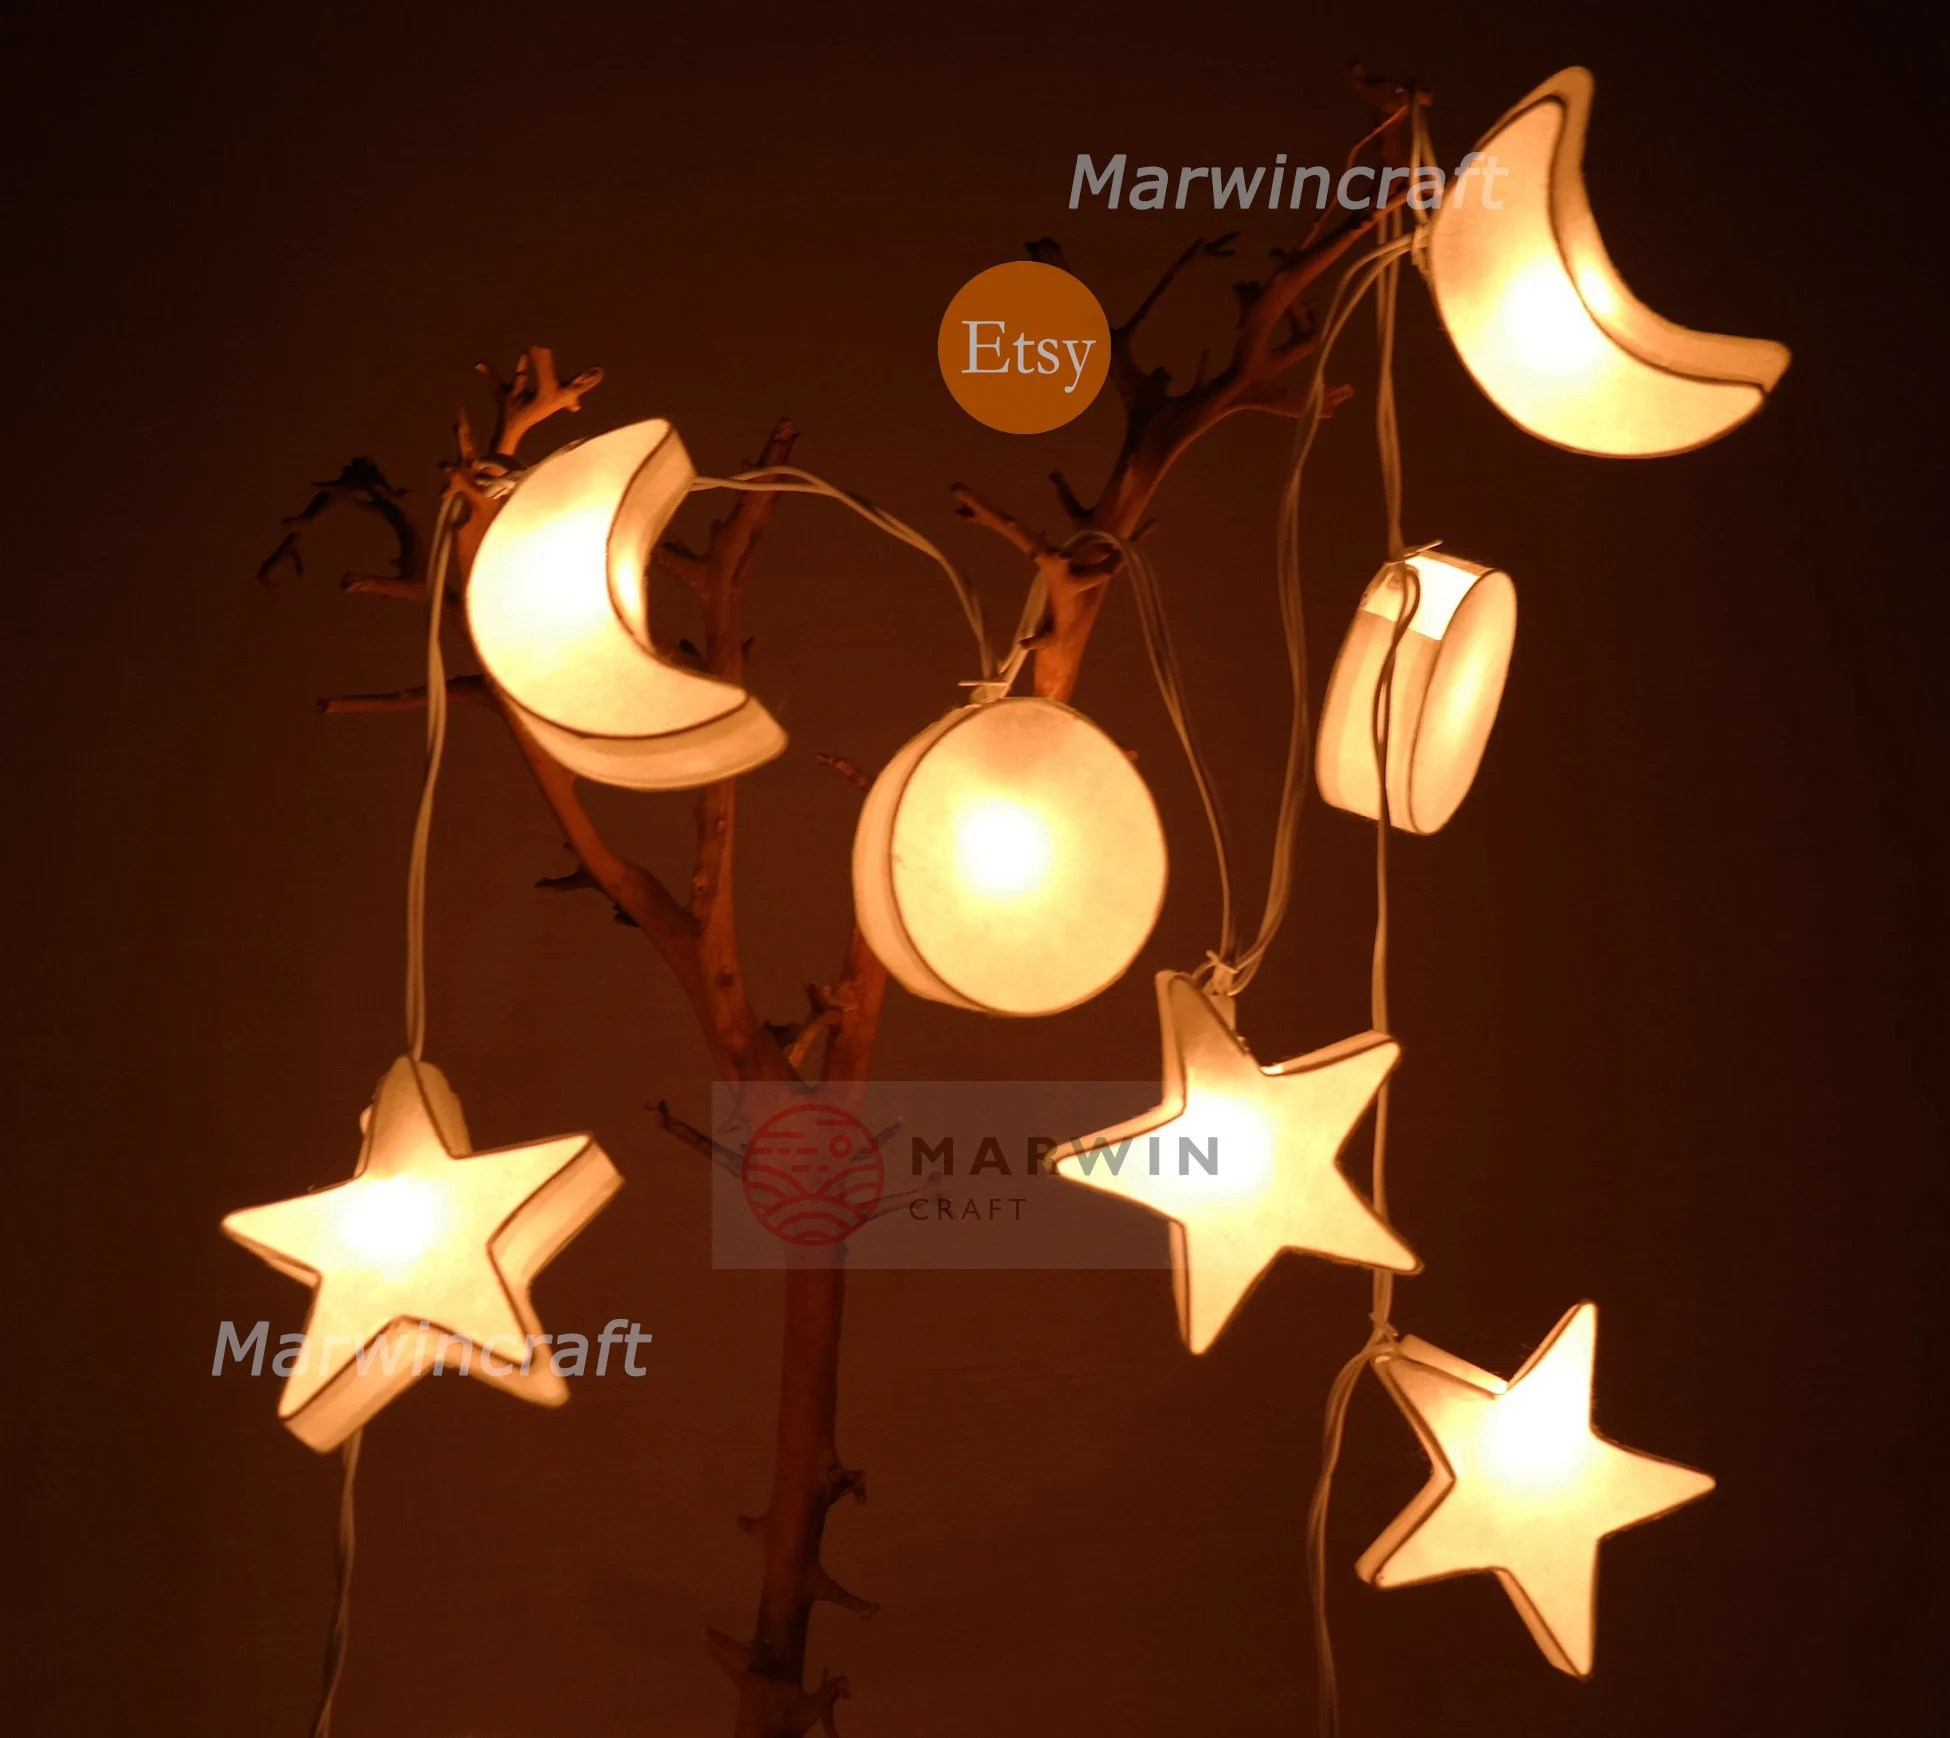 String lights   Etsy White String Lights Star Moon Paper Fairy Lights Bedroom Home Decor Living  Room Wall Hanging Lights Wedding Decor Dorm Lights Battery Plug